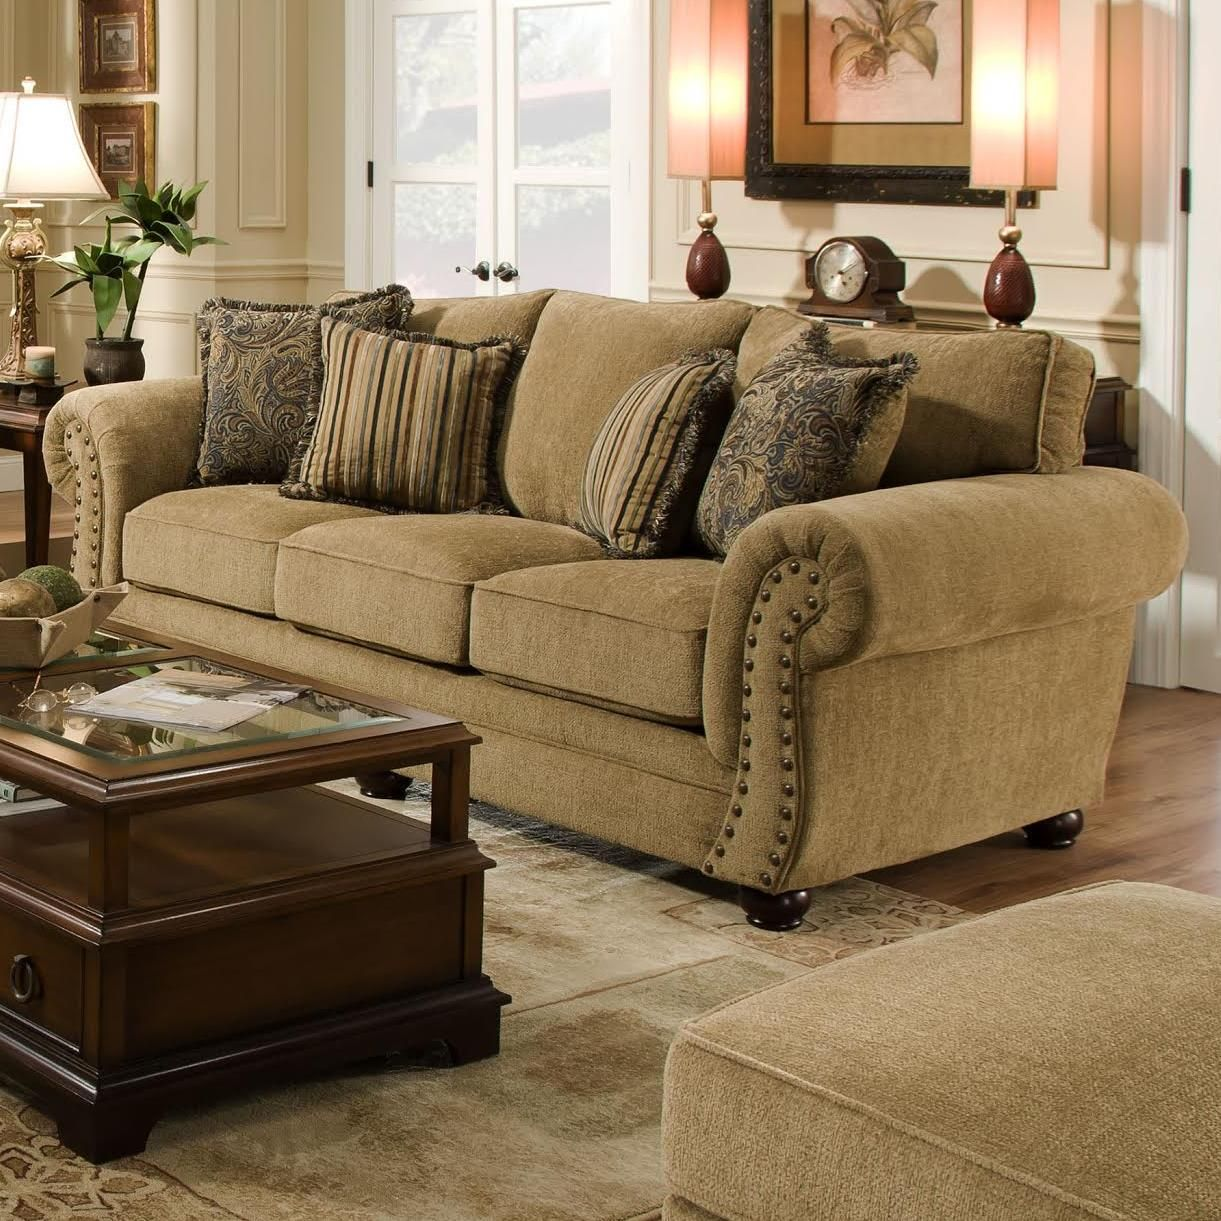 Traditional Furniture Online: 4277 Traditional Sofa With Rolled Arms And Nailhead Trim